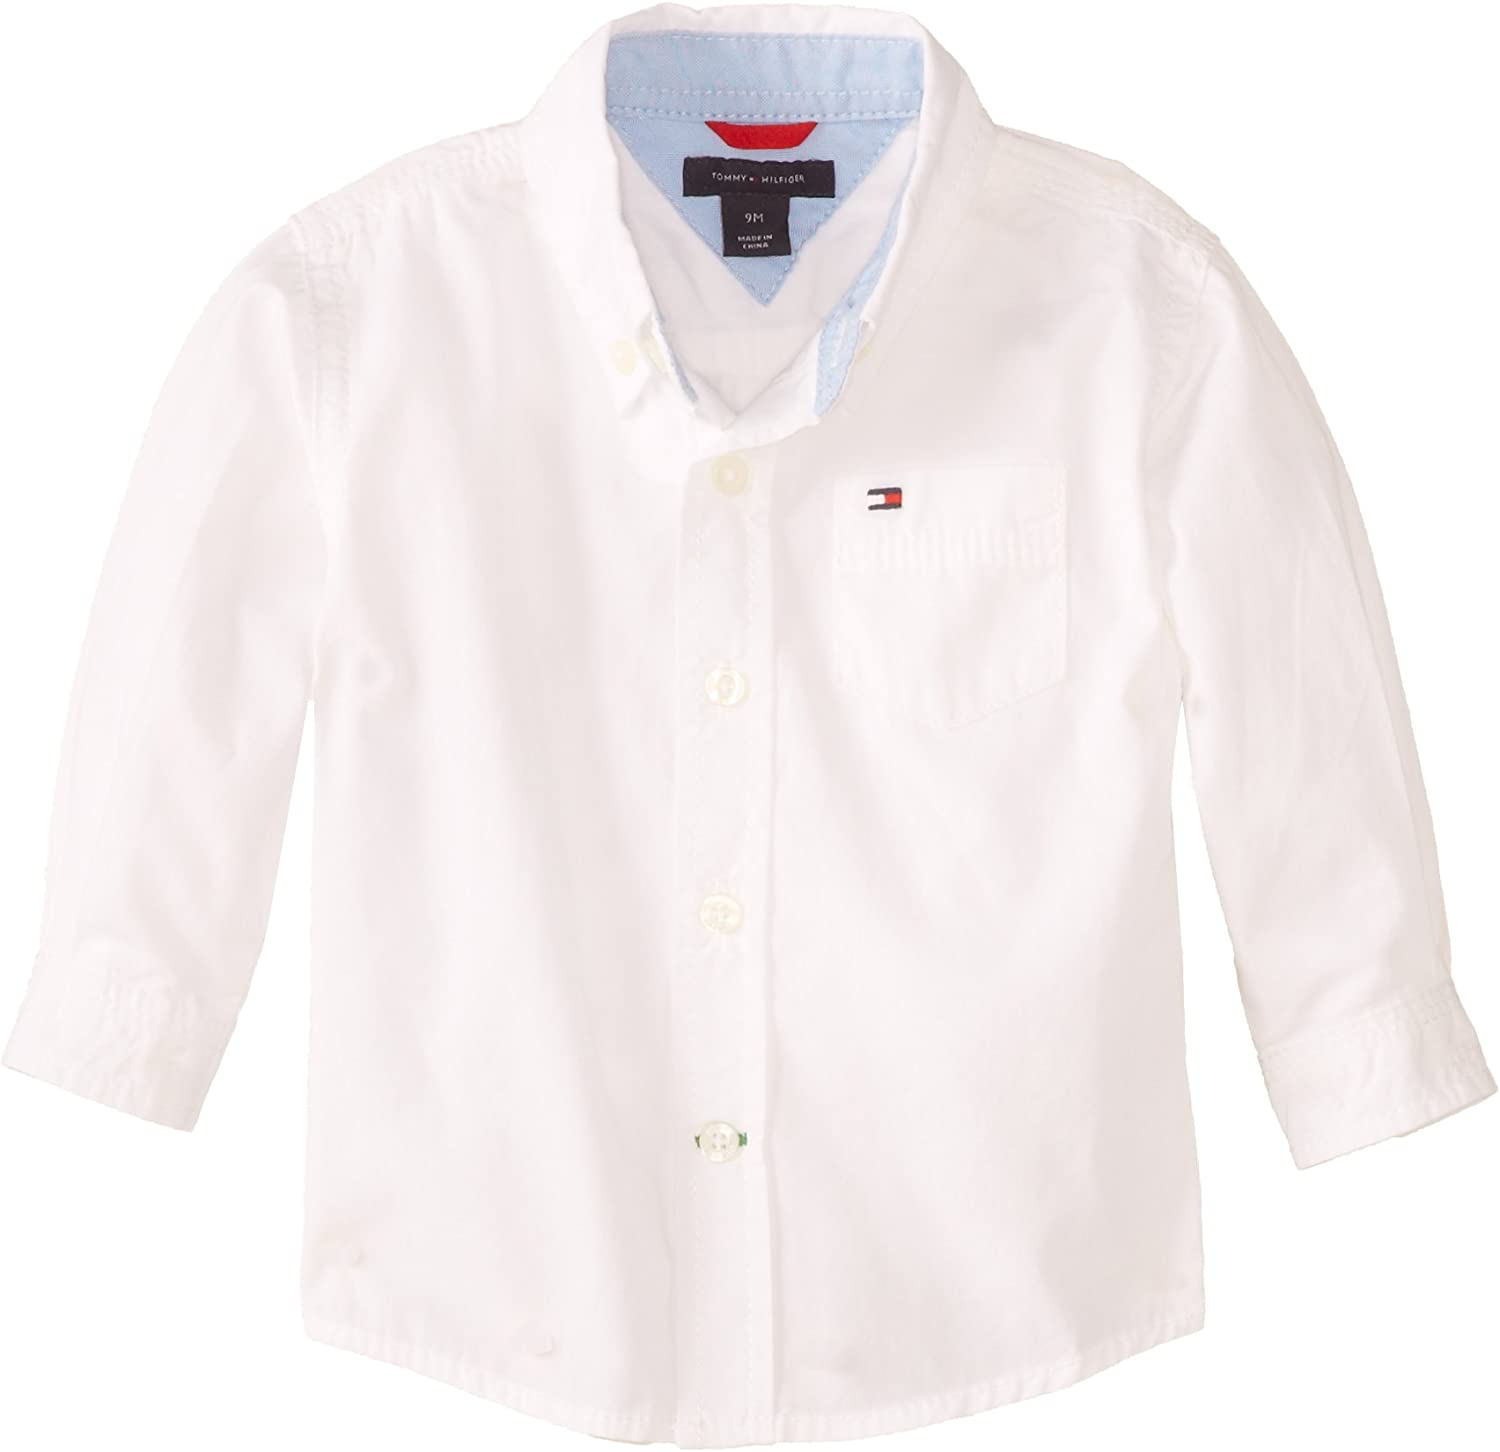 Baby Boy/'s Tommy Hilfiger Long Sleeve Woven Shirt in White